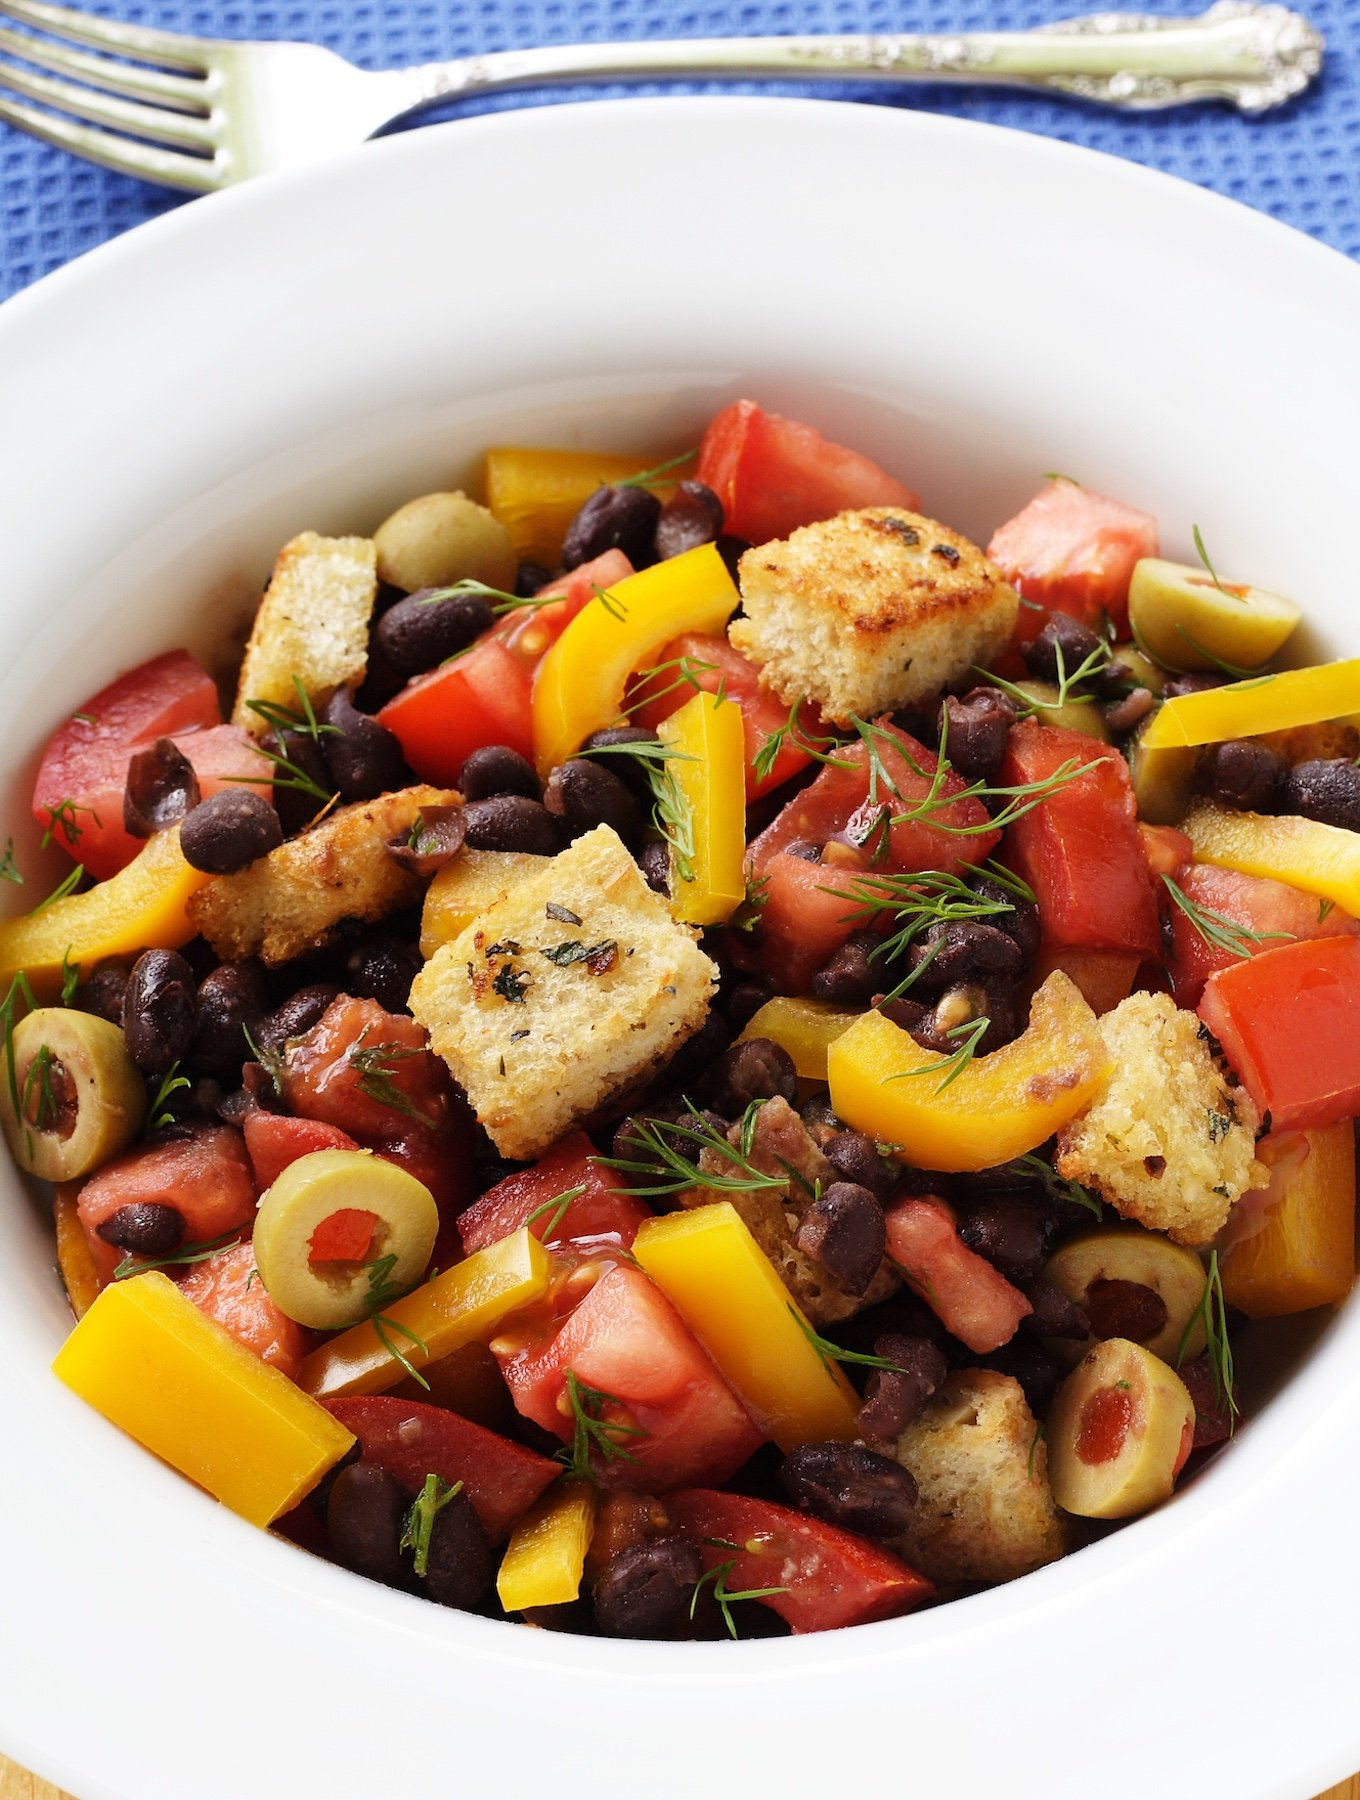 Black Bean Salad with tomatoes and croutons